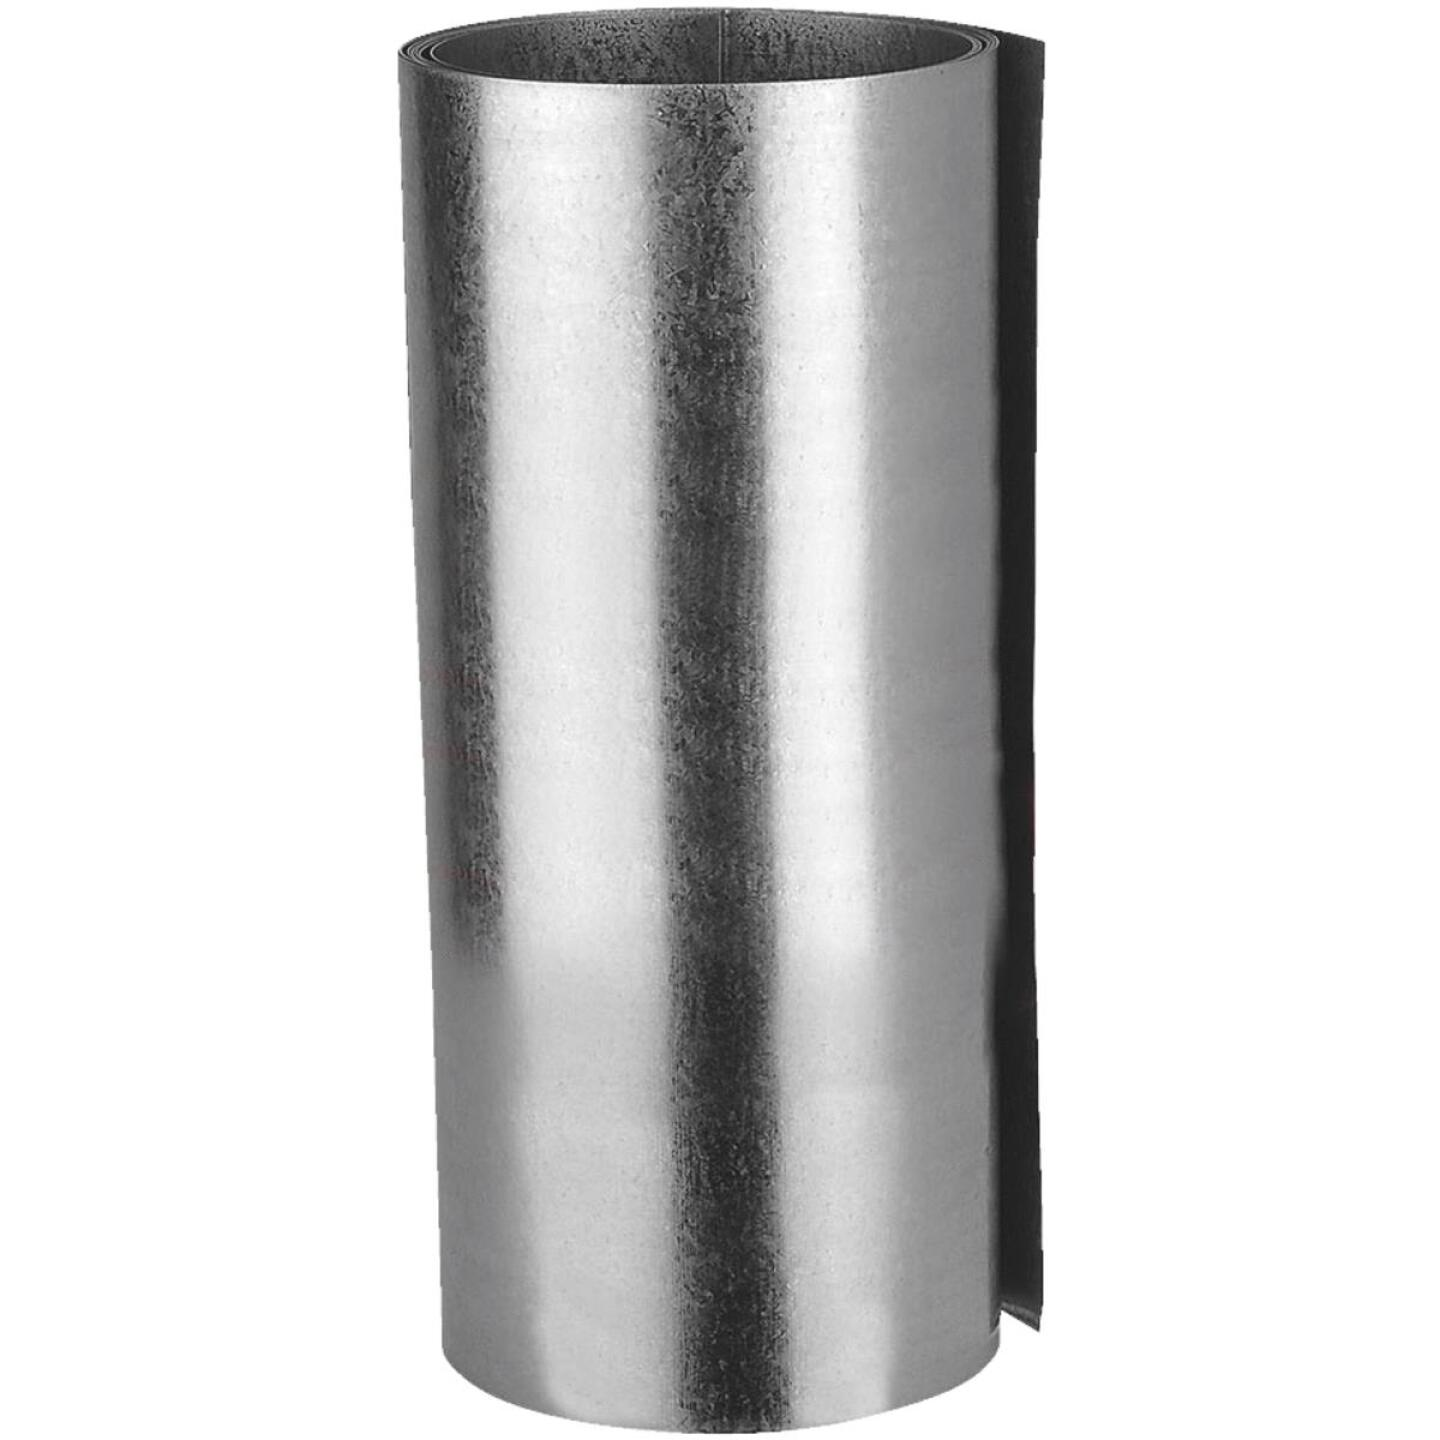 NorWesco 10 In. x 50 Ft. Mill Galvanized Roll Valley Flashing Image 1